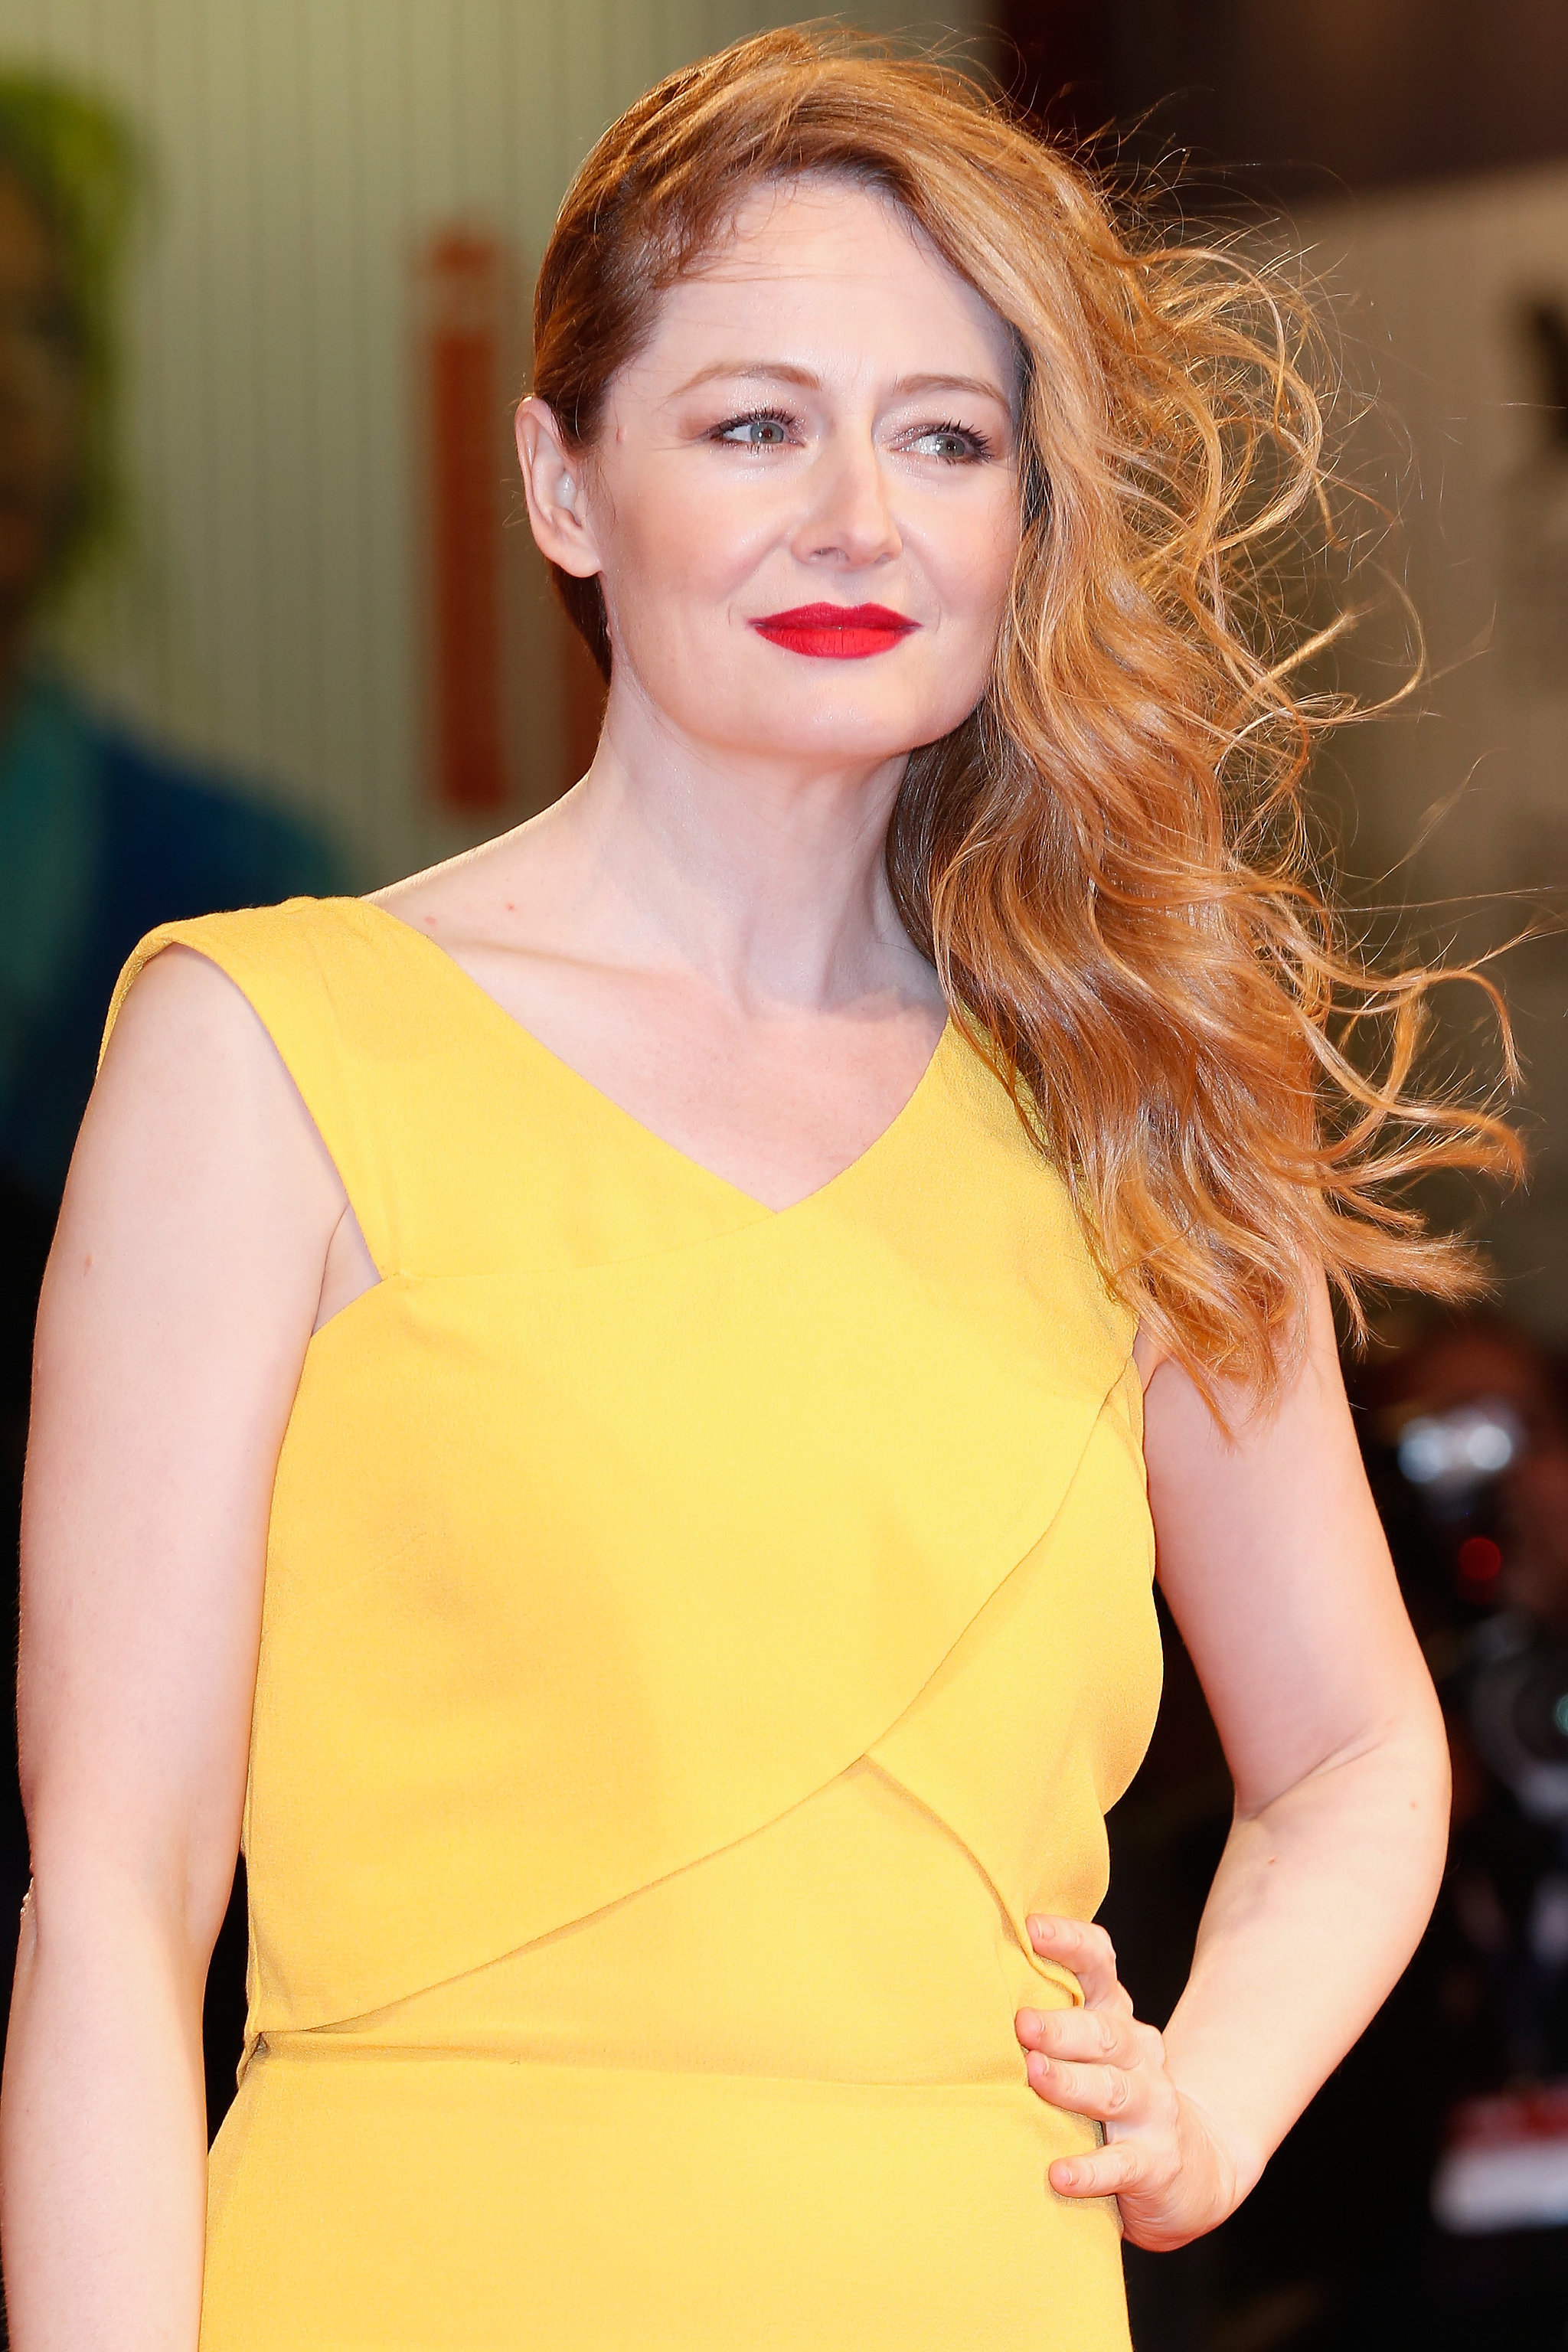 Bikini Miranda Otto nudes (58 fotos) Hot, Instagram, cleavage